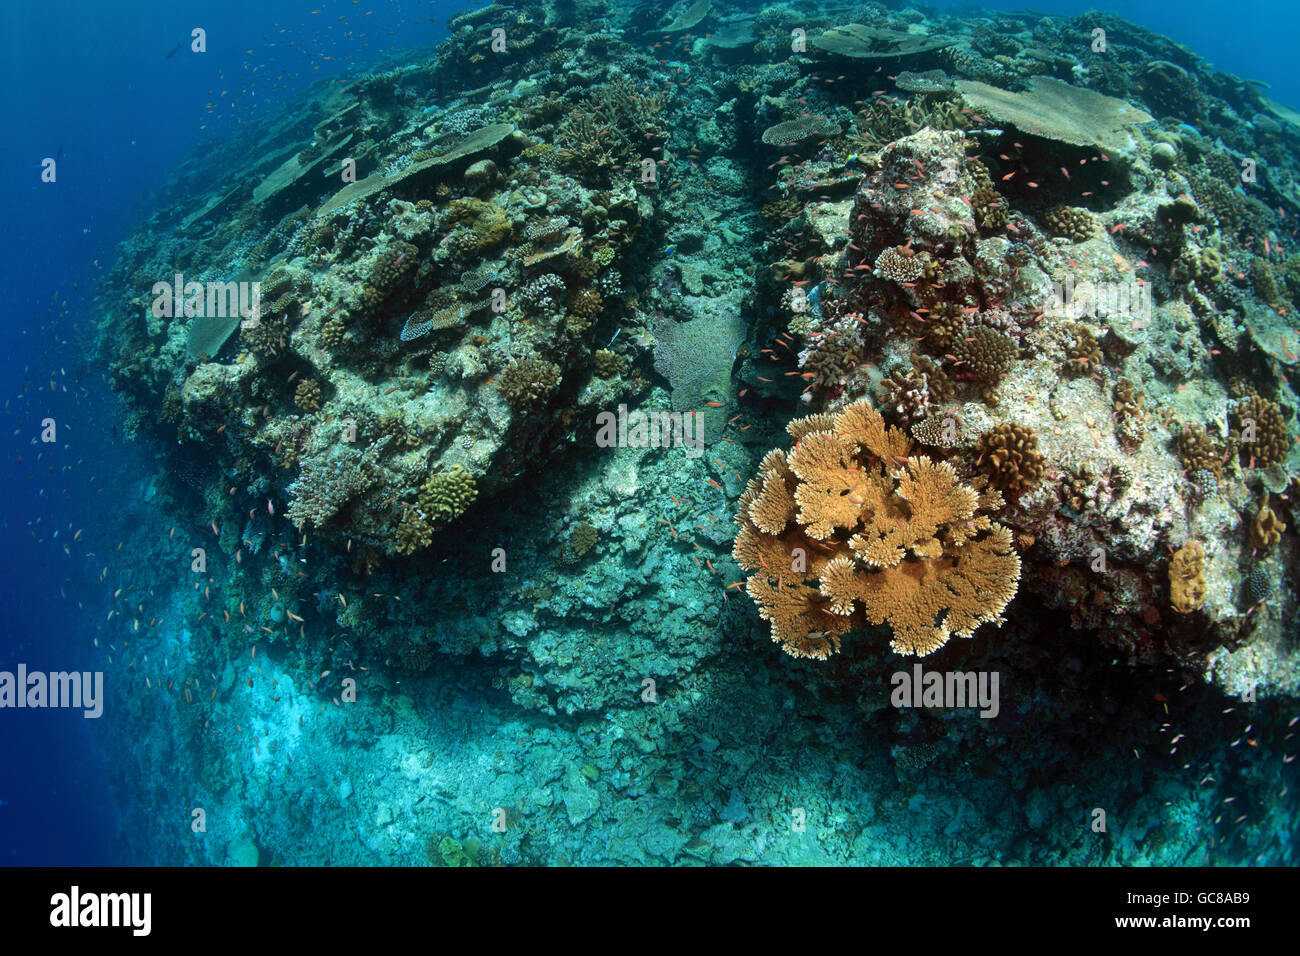 Tropical Coral reef in Oceano Indiano Immagini Stock